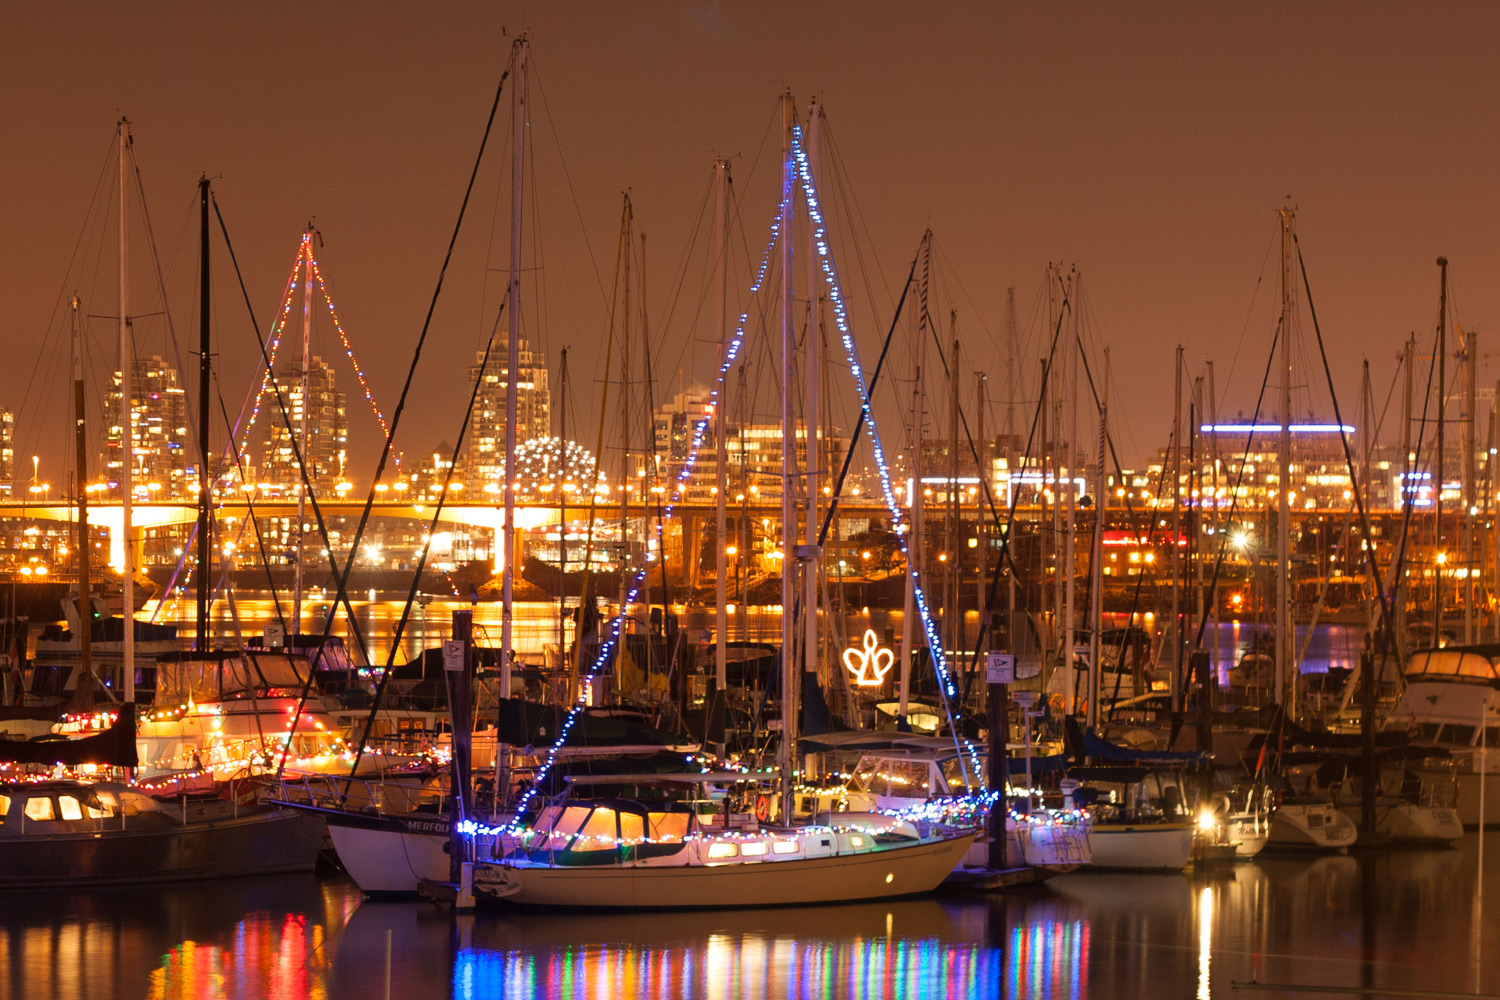 Tips for Better Results When Shooting in Low Light Conditions - marina at night shot